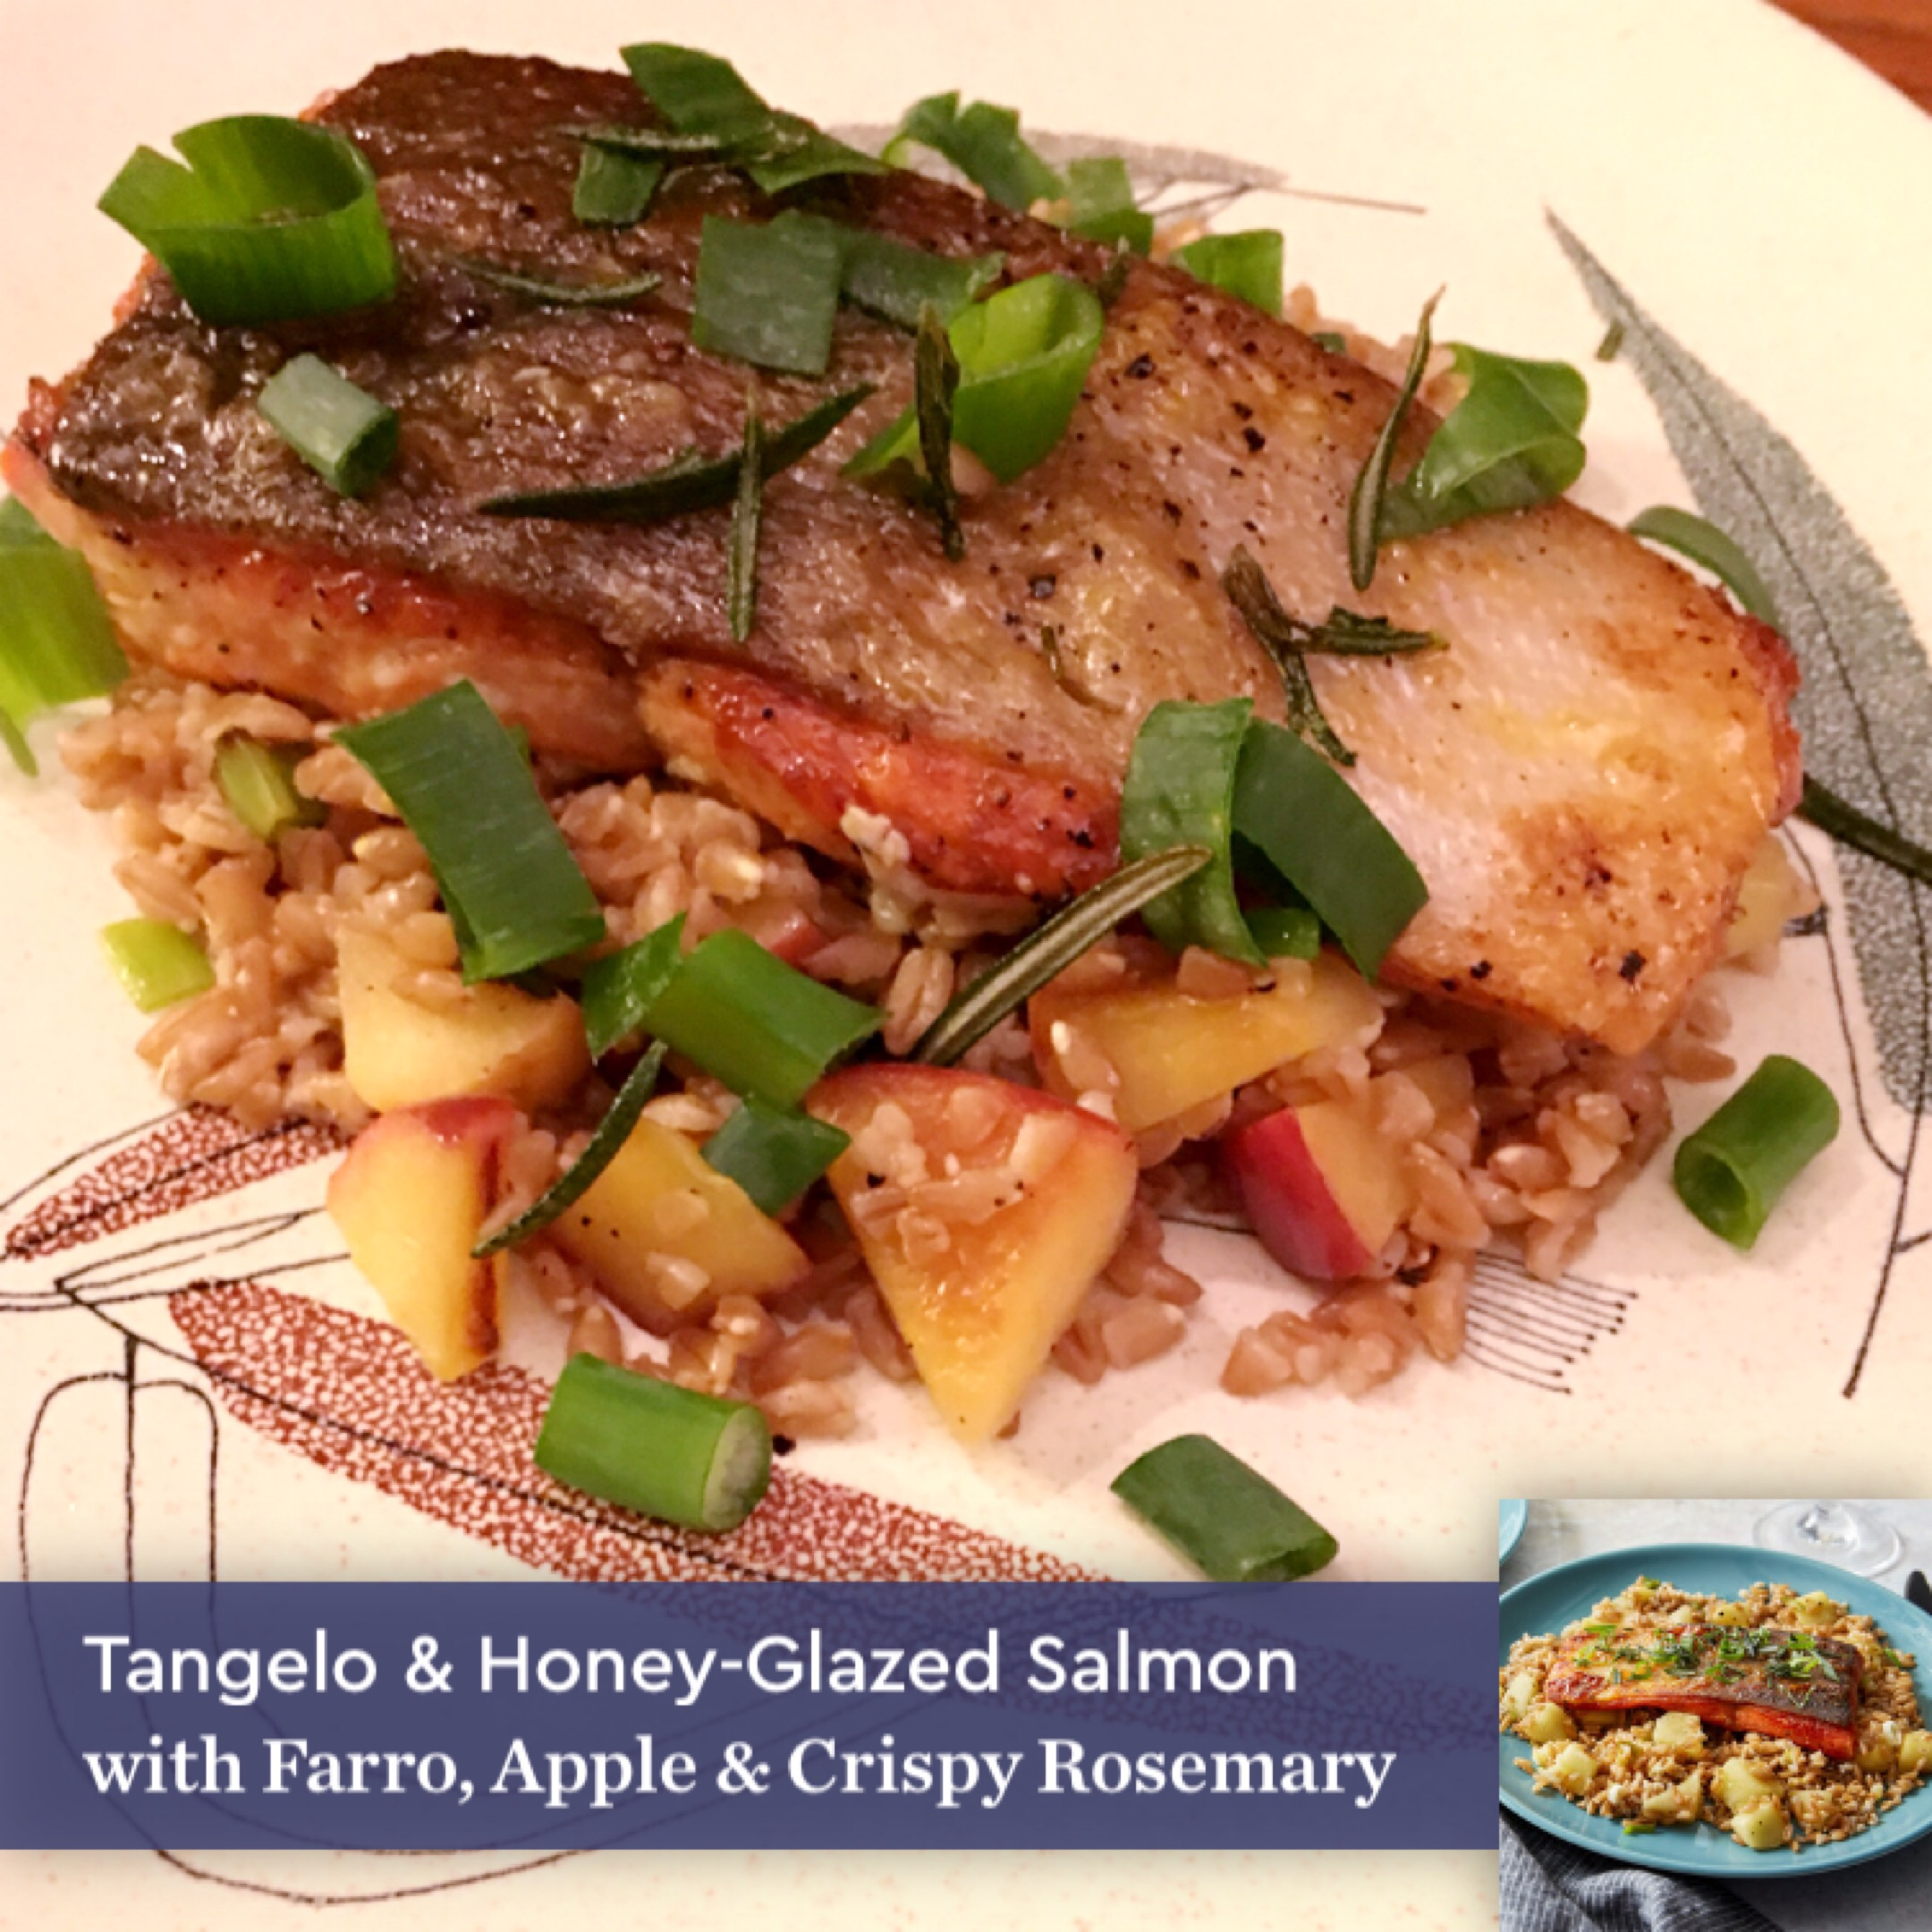 Blue apron restaurant - Take A Look At The Pictures From My First Box Below I Used The Handy Blue Apron App For Filters And The Recipe Captions